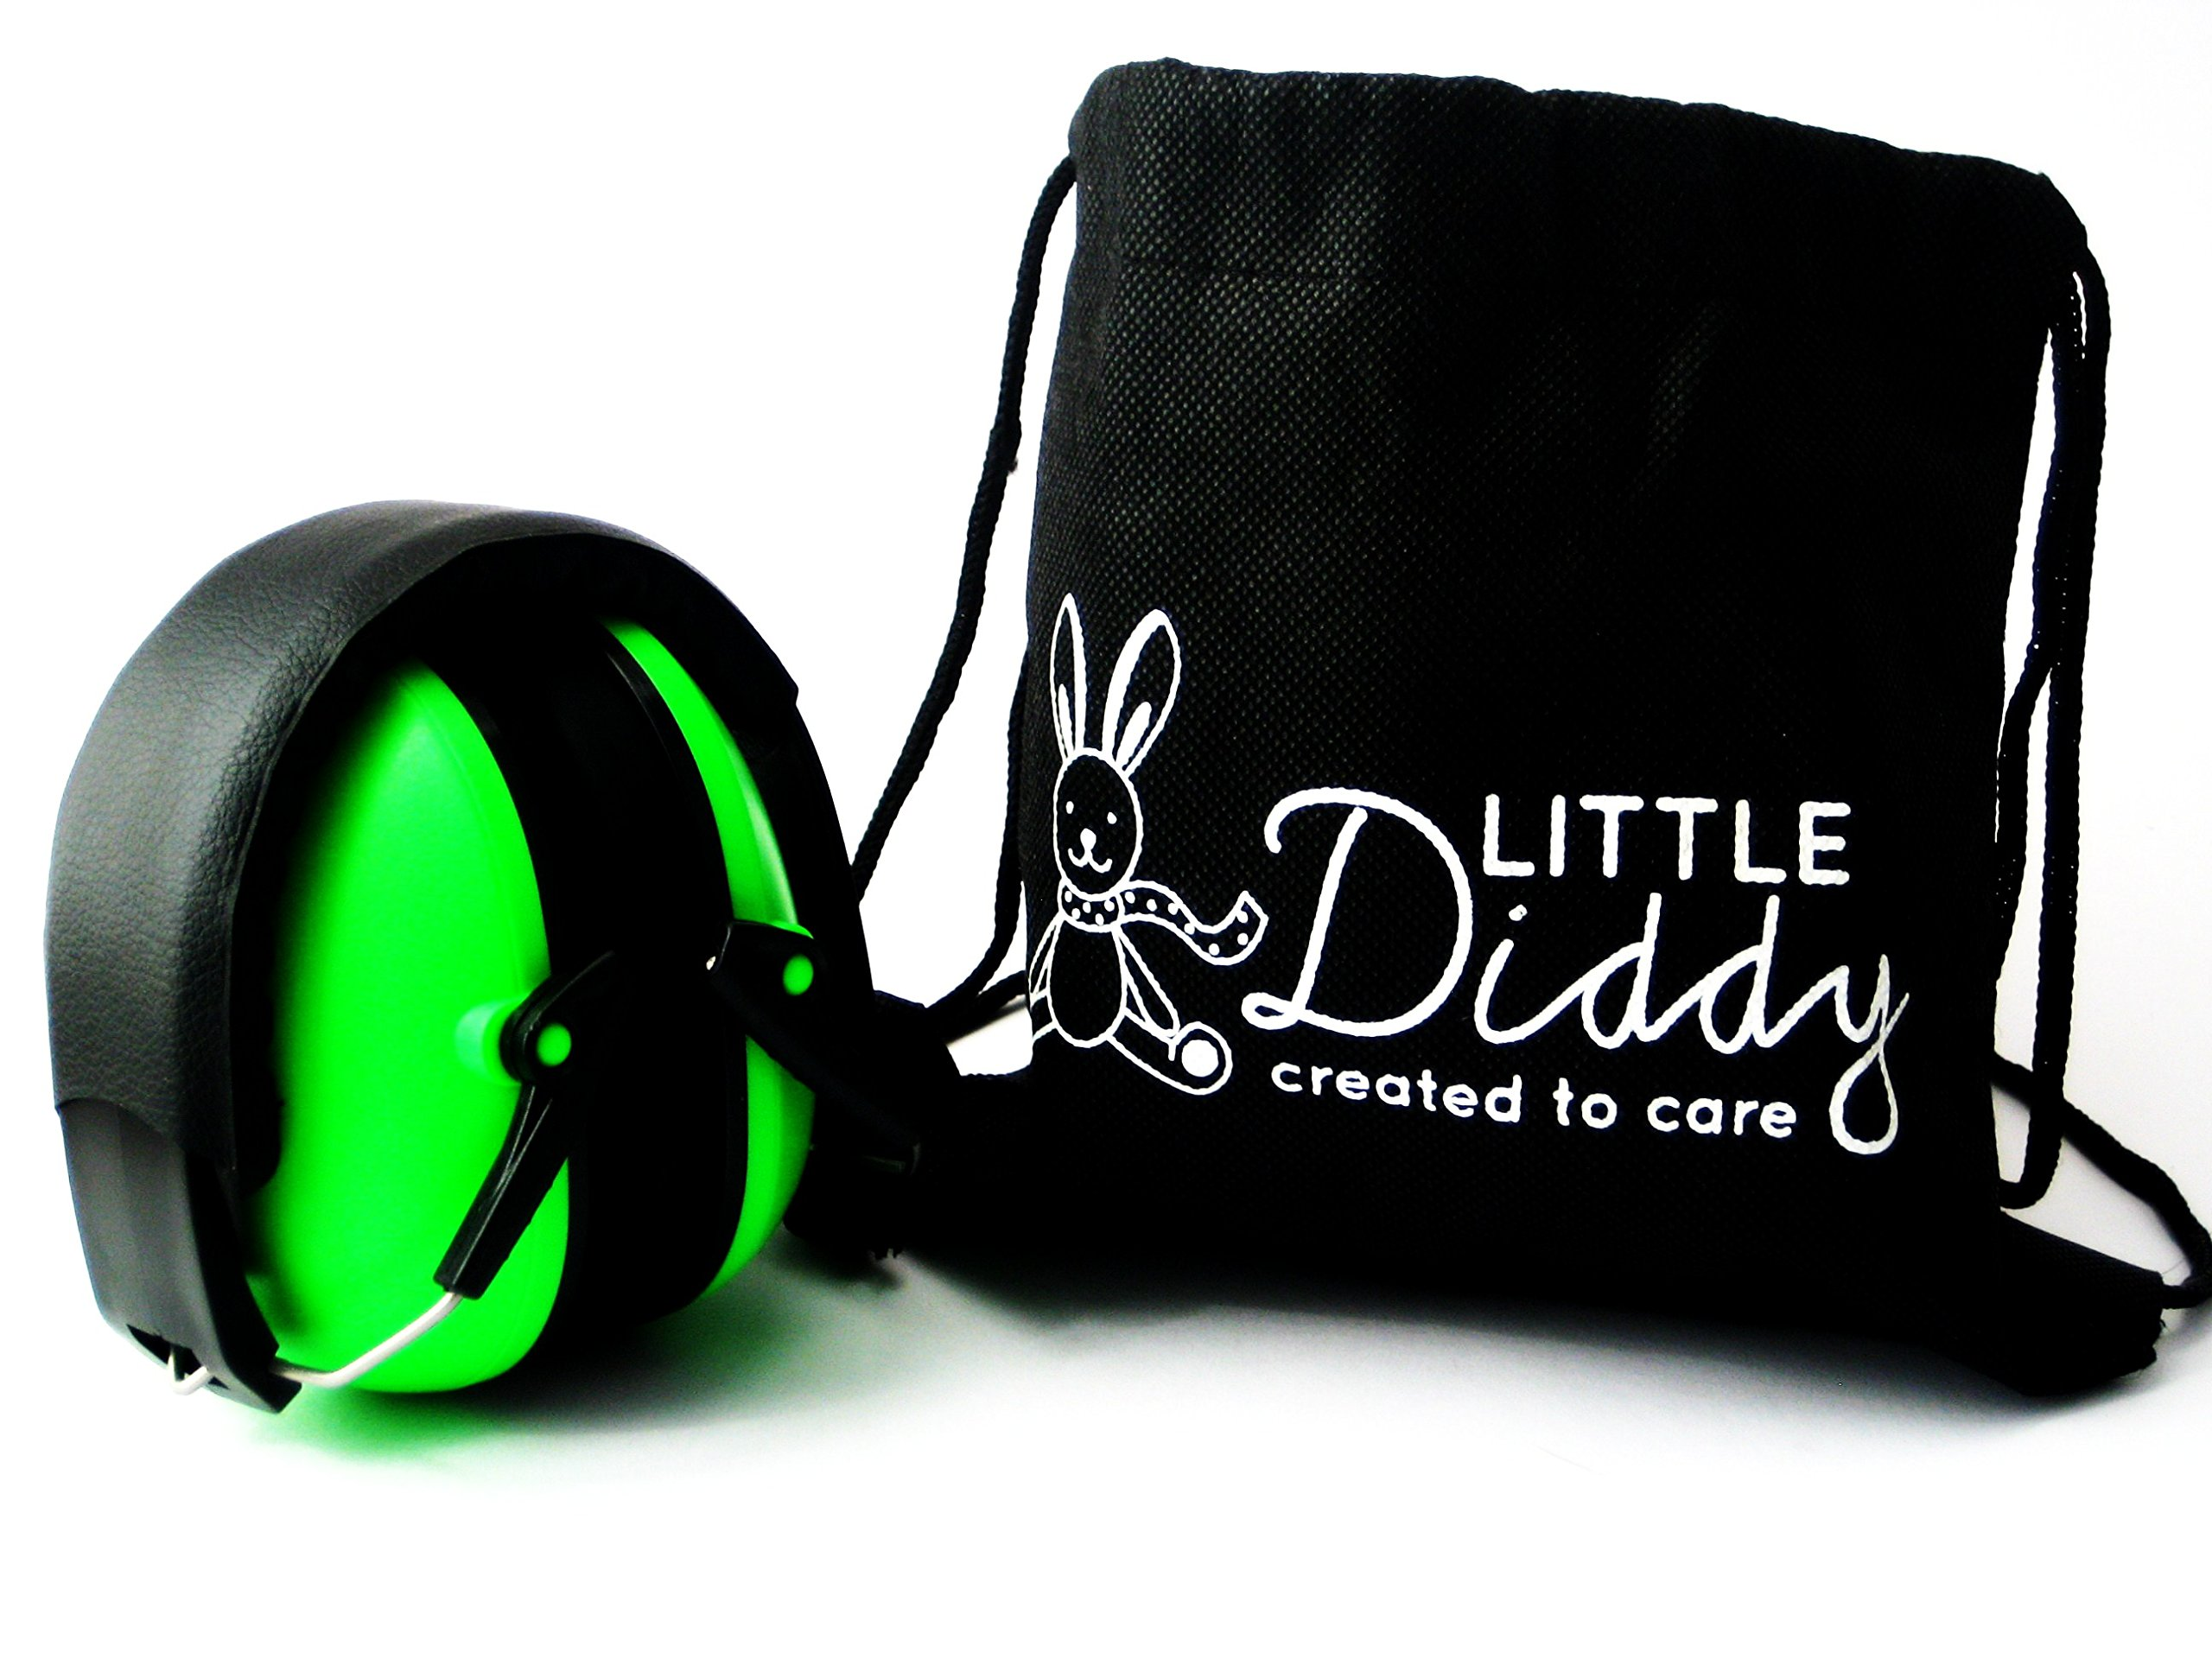 Kids Ear Defenders, Childrens Ear Muffs by Little Diddy. Extremely Comfortable, Adjustable & Safety Approved to Protect Hearing, Keep your Child Calm. Comes with Carry Bag & Choice of Colours